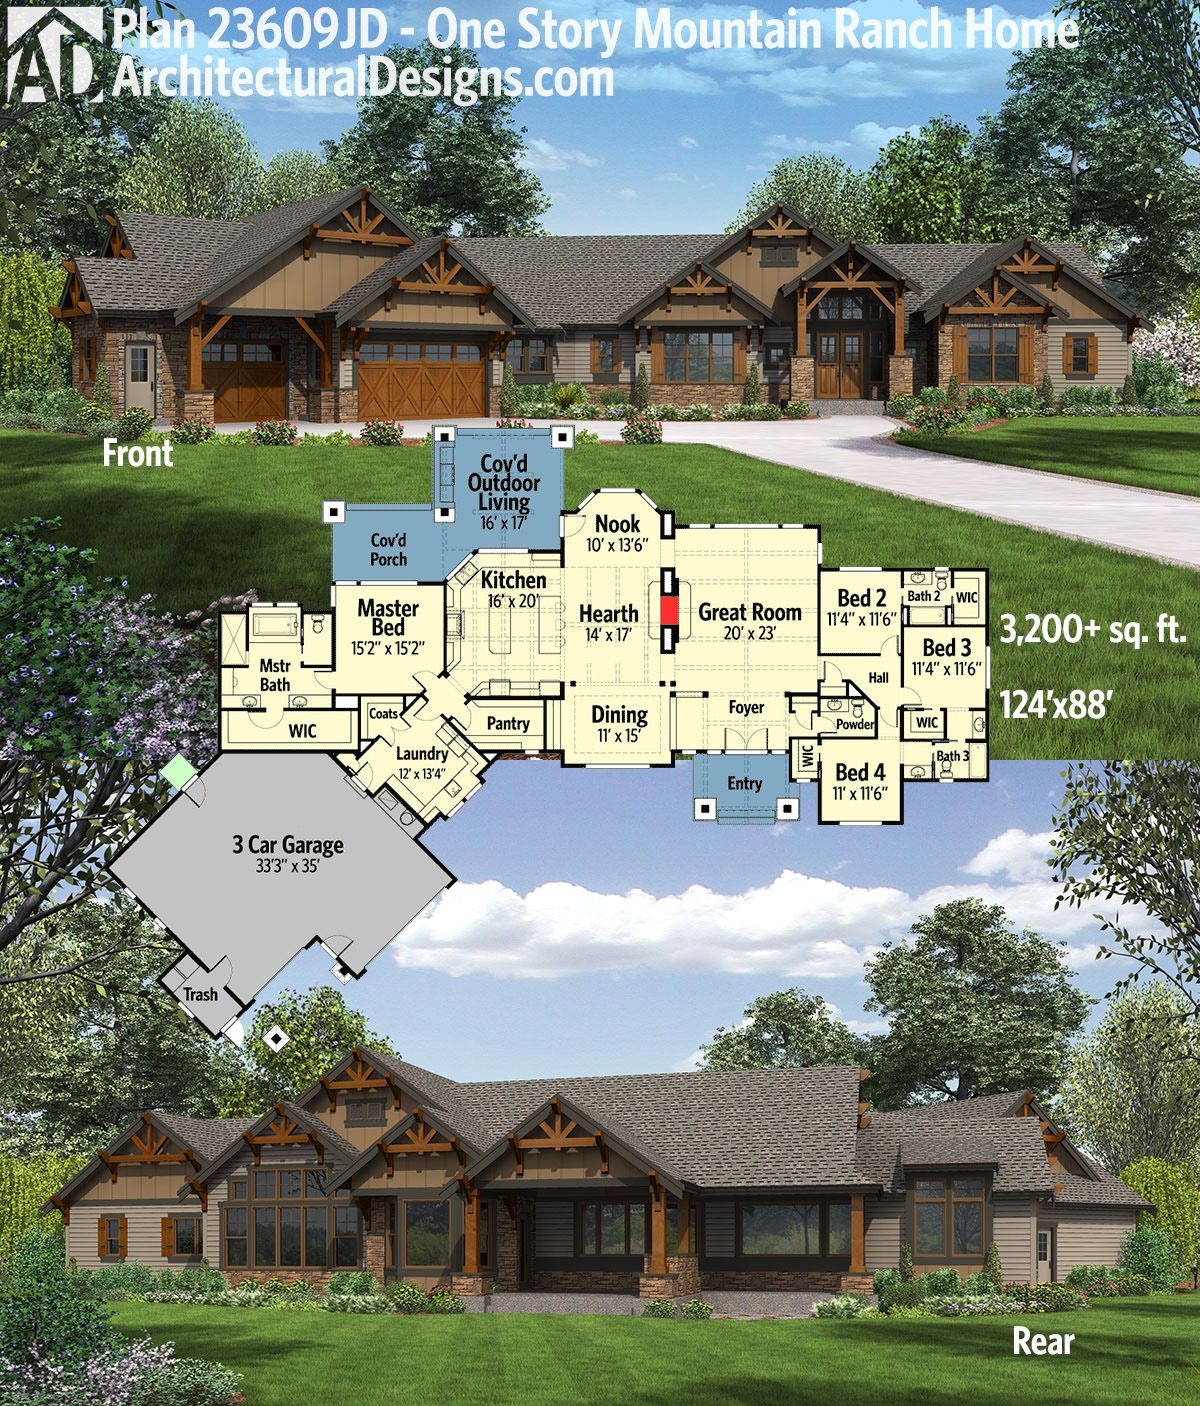 Plan 23609JD: One Story Mountain Ranch Home With Options